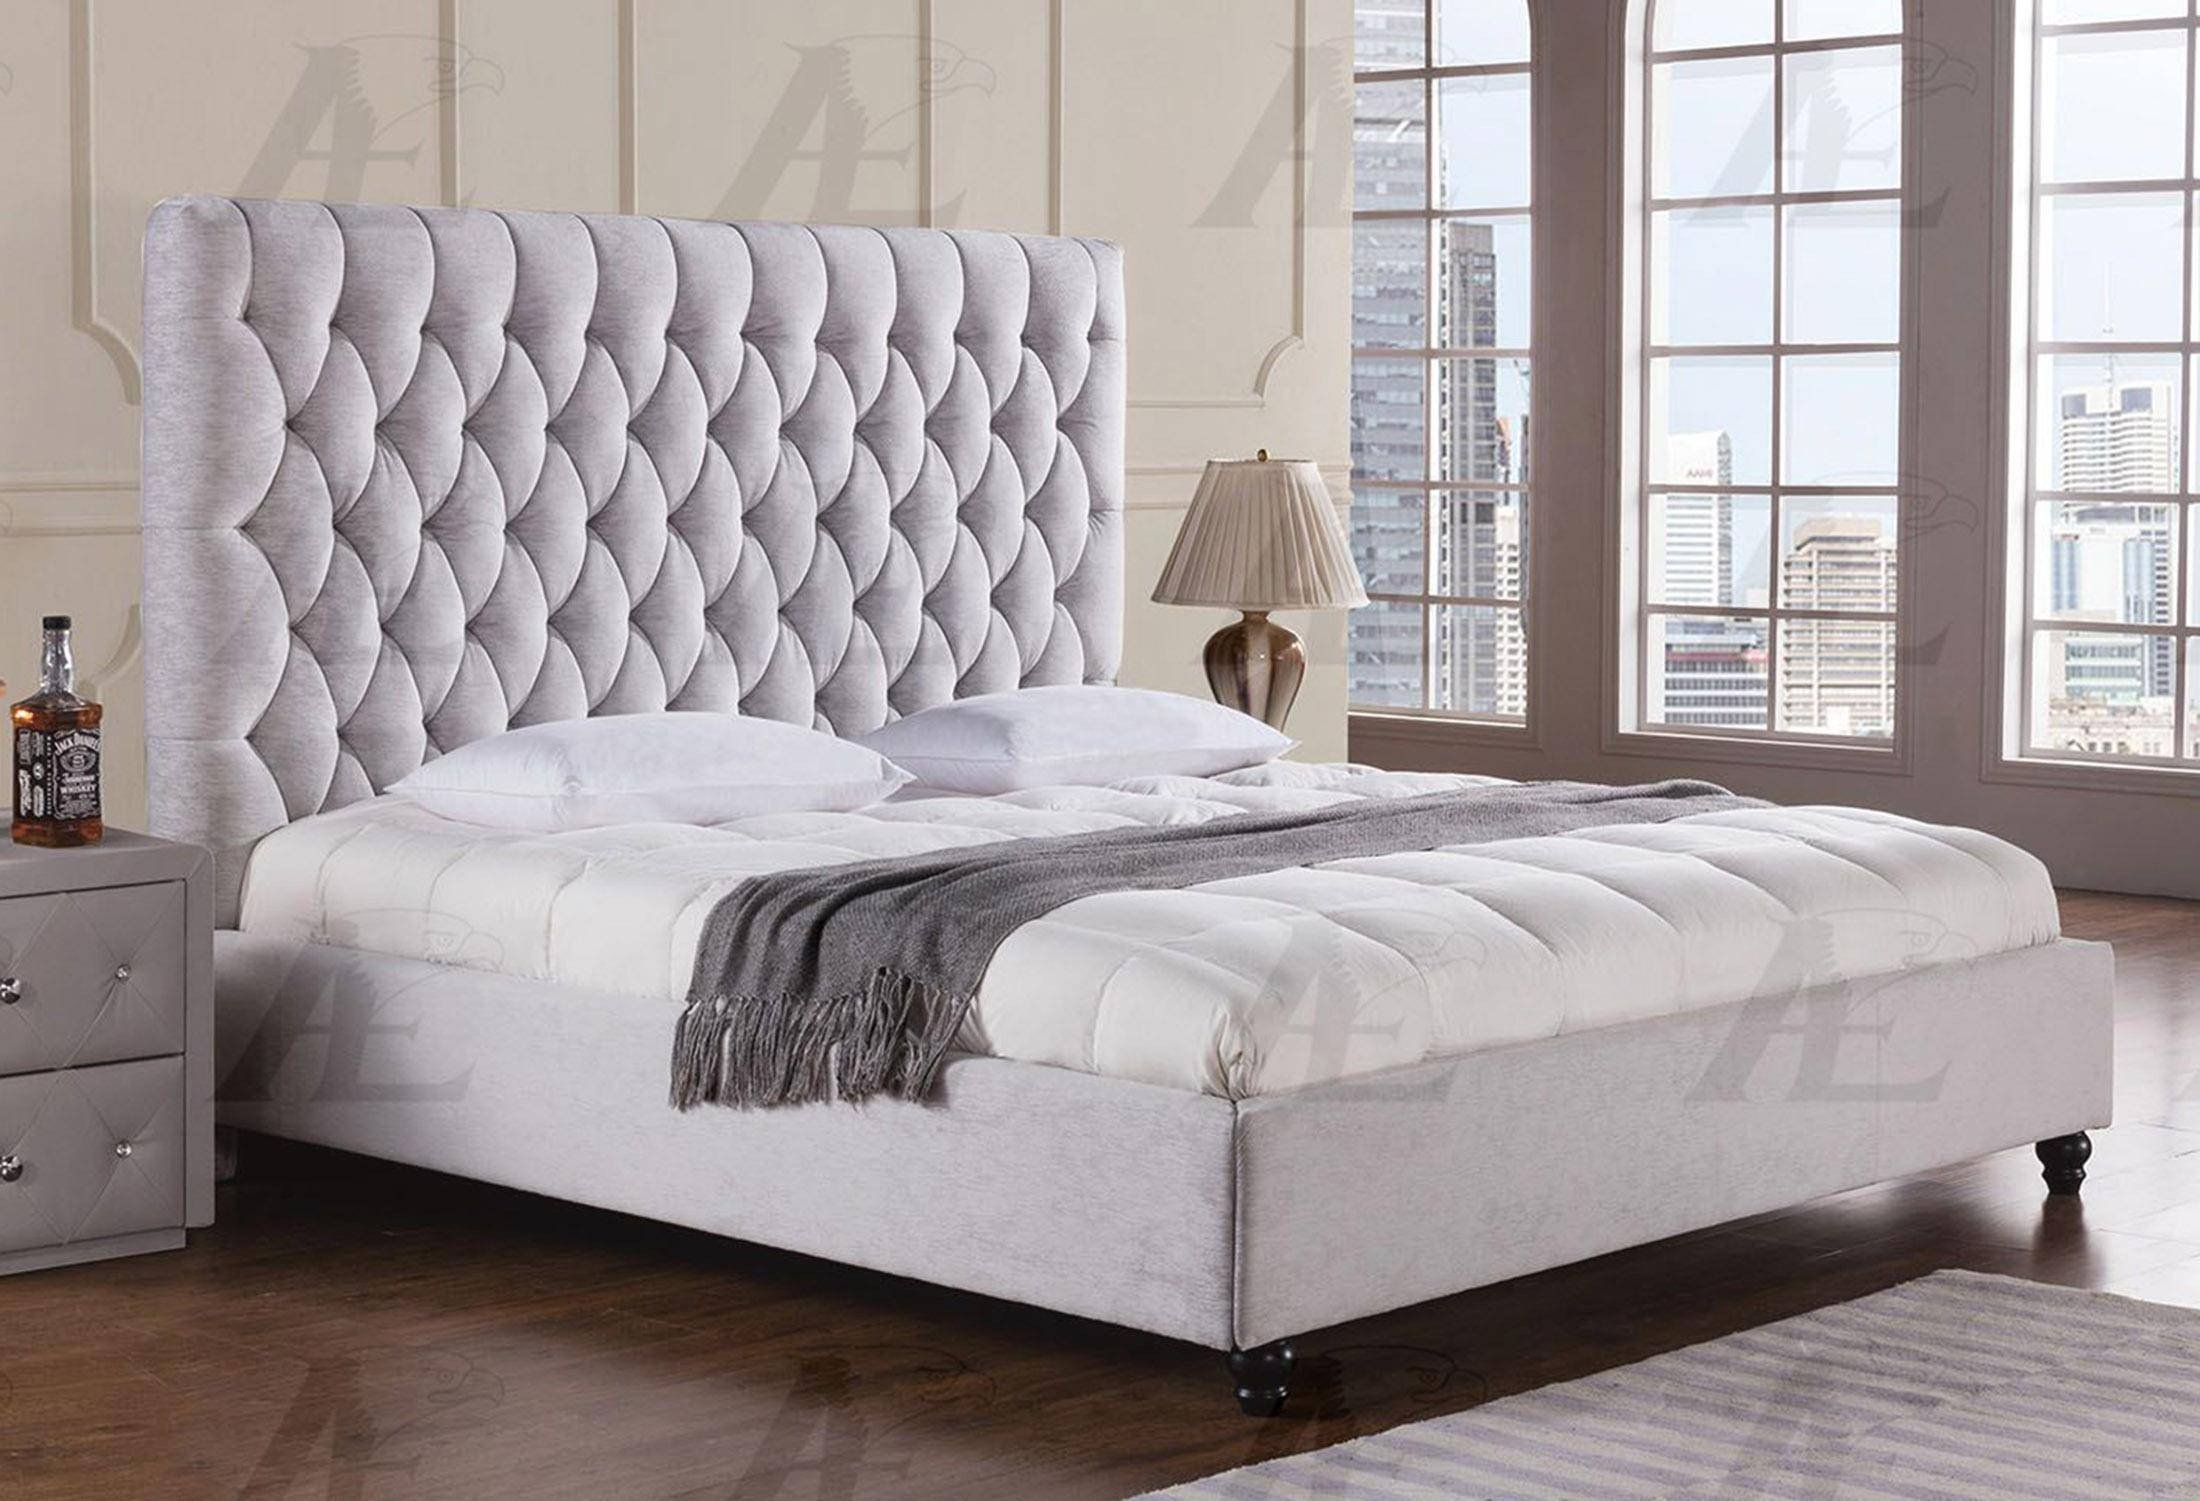 Best Quality Bedroom Furniture Fresh American Eagle Furniture B D060 Light Gray Queen Size Bed